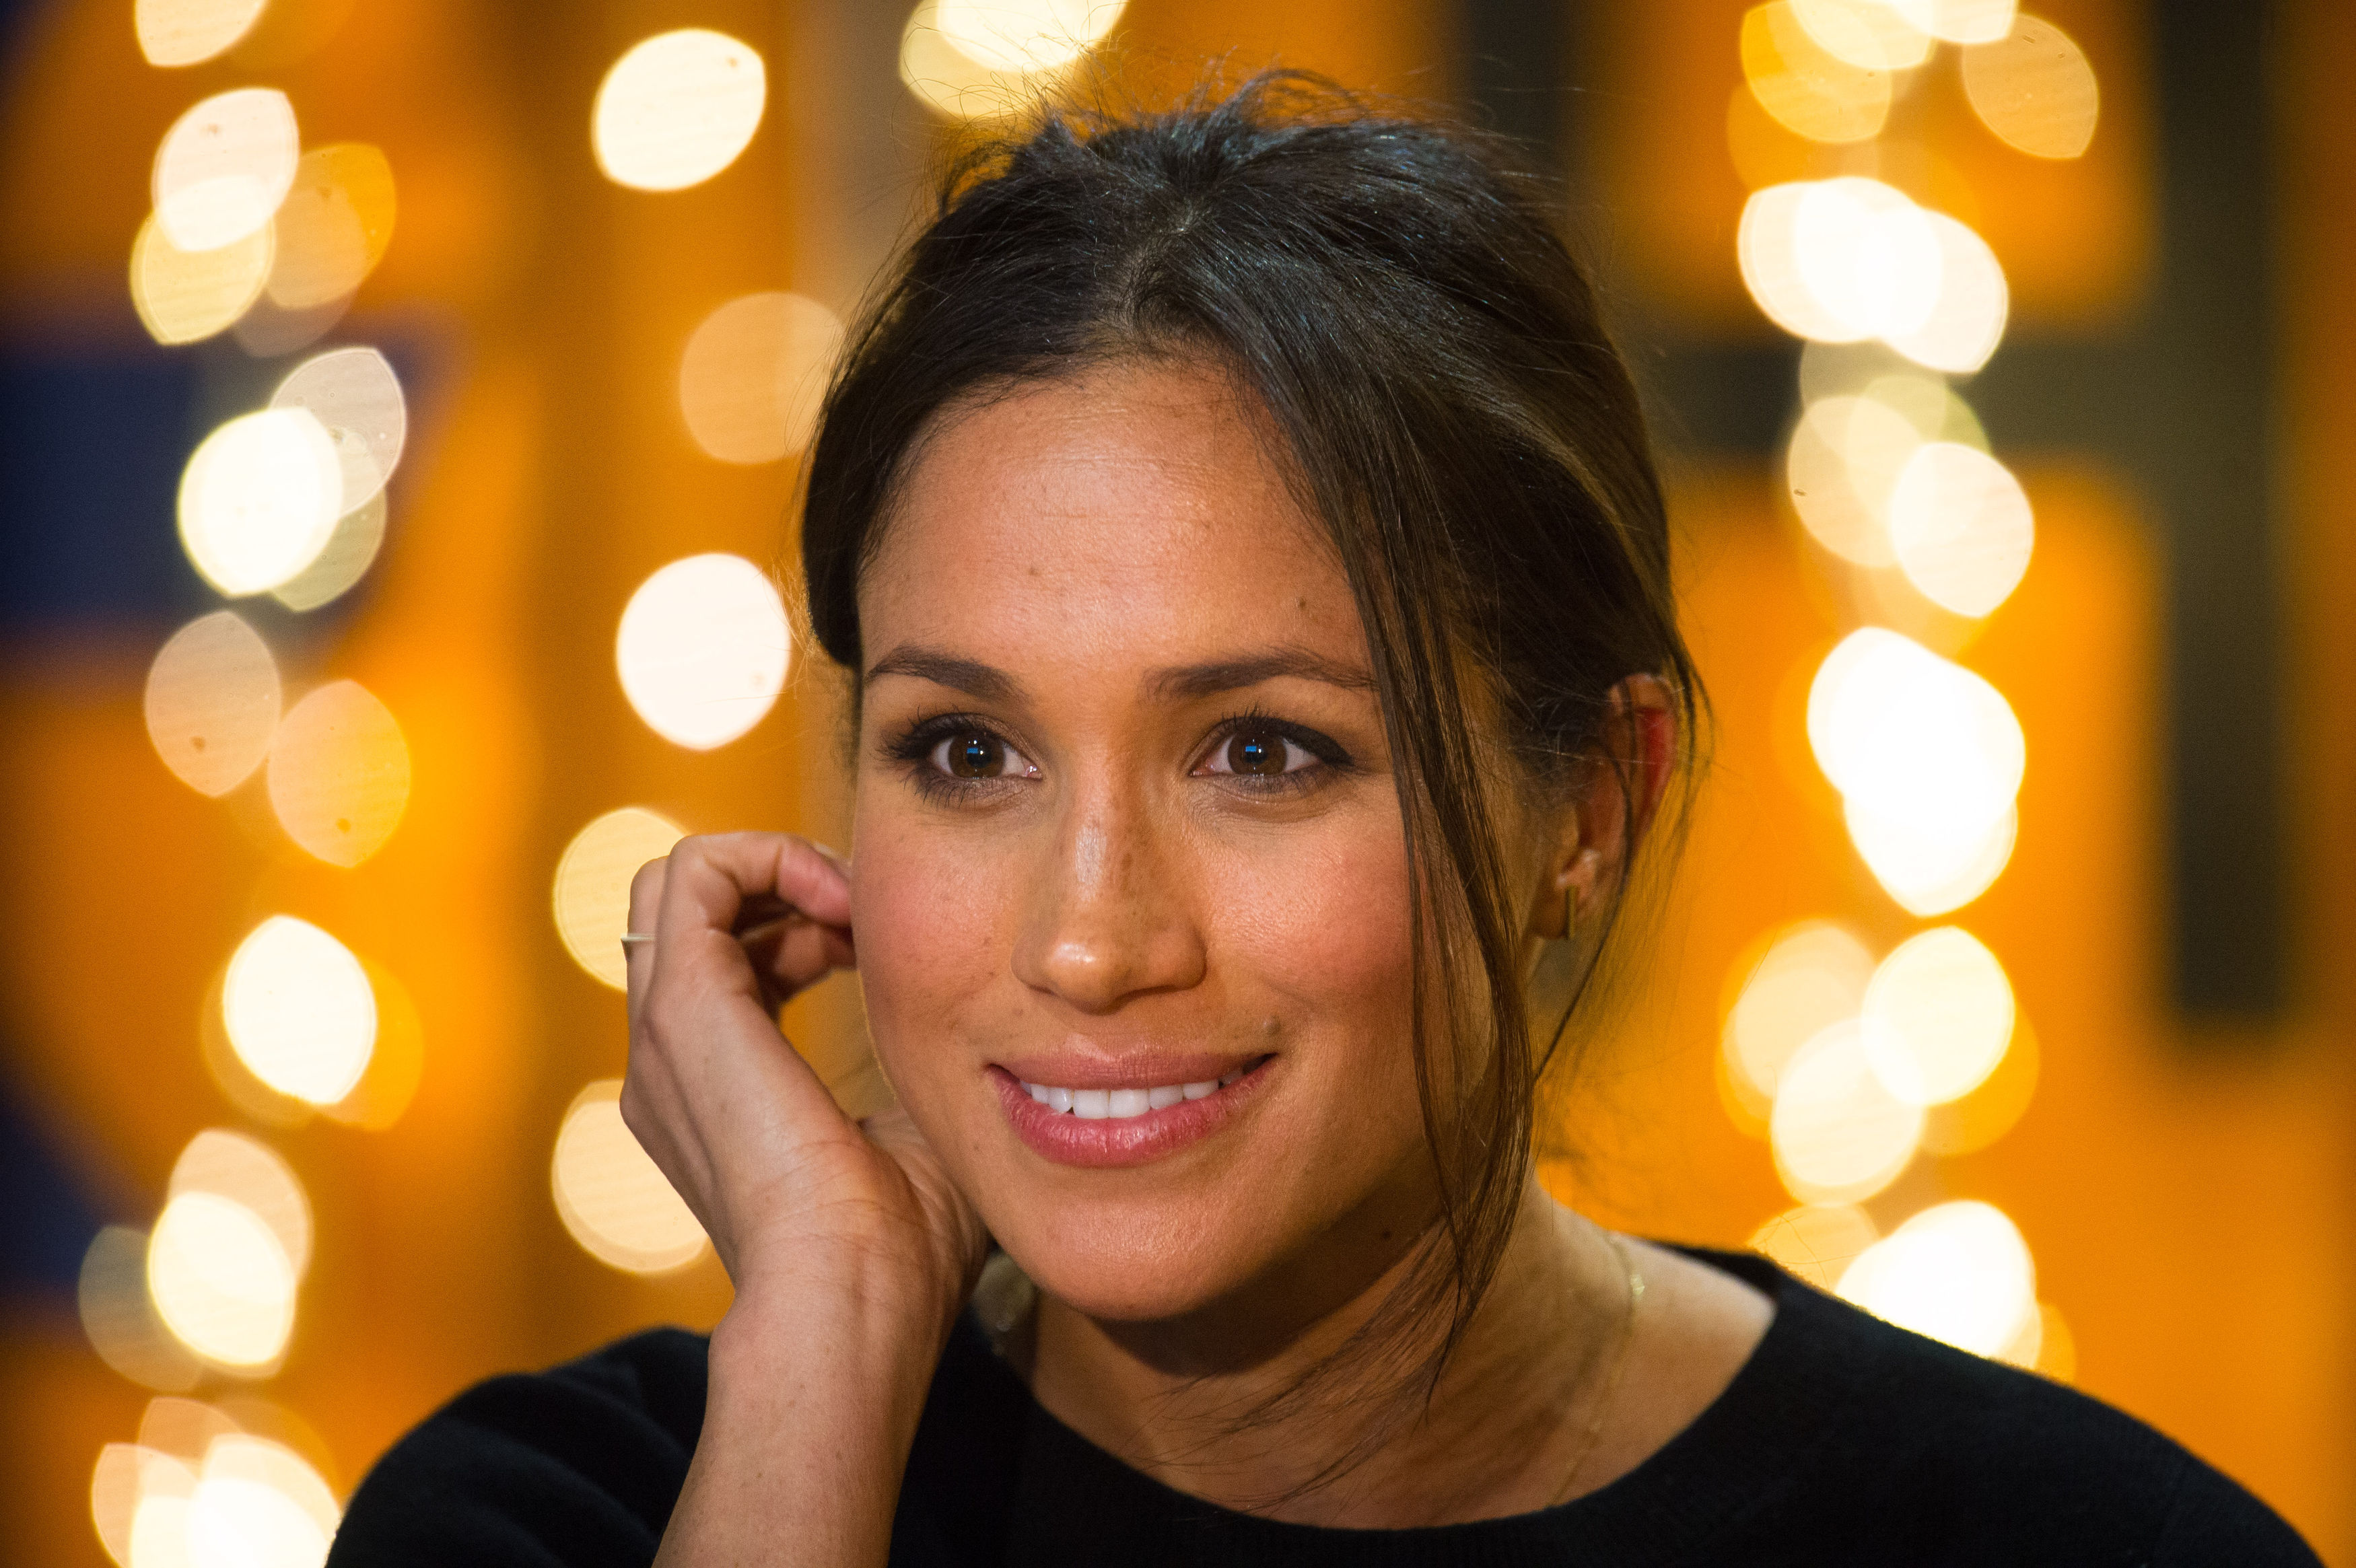 meghan markle has spoken her mind since she was a young girl first for women https www firstforwomen com posts entertainment meghan markle speaking her mind 151199